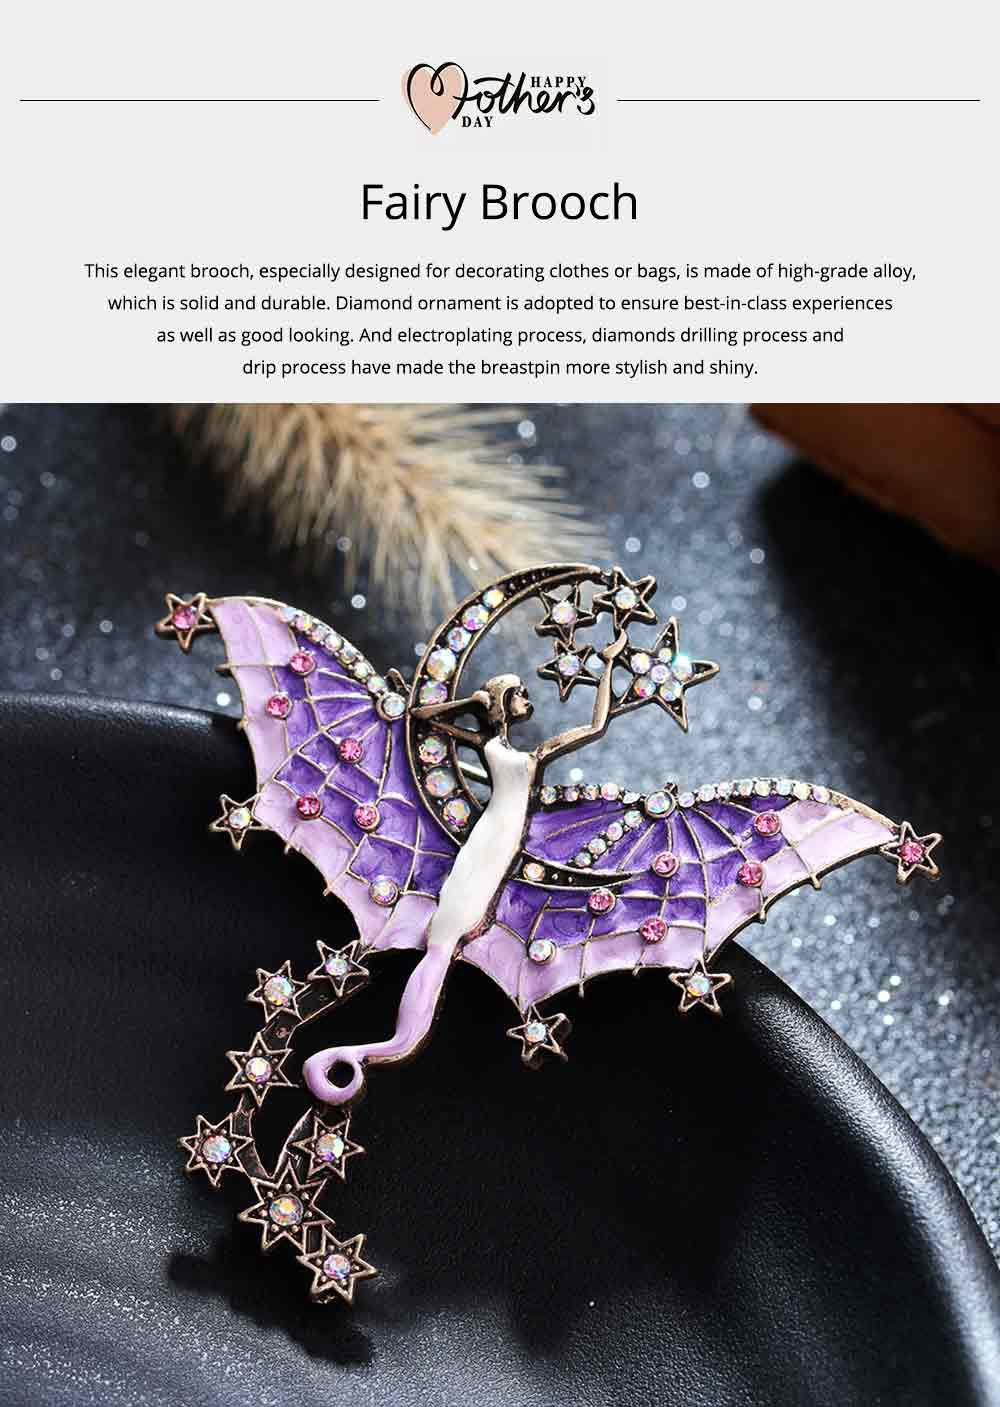 Dainty Fairy Stars Moon Model Alloy Brooch for Women Ladies, Stylish Bag Clothes Decoration Breastpin with Diamond Drilling Ornament 0